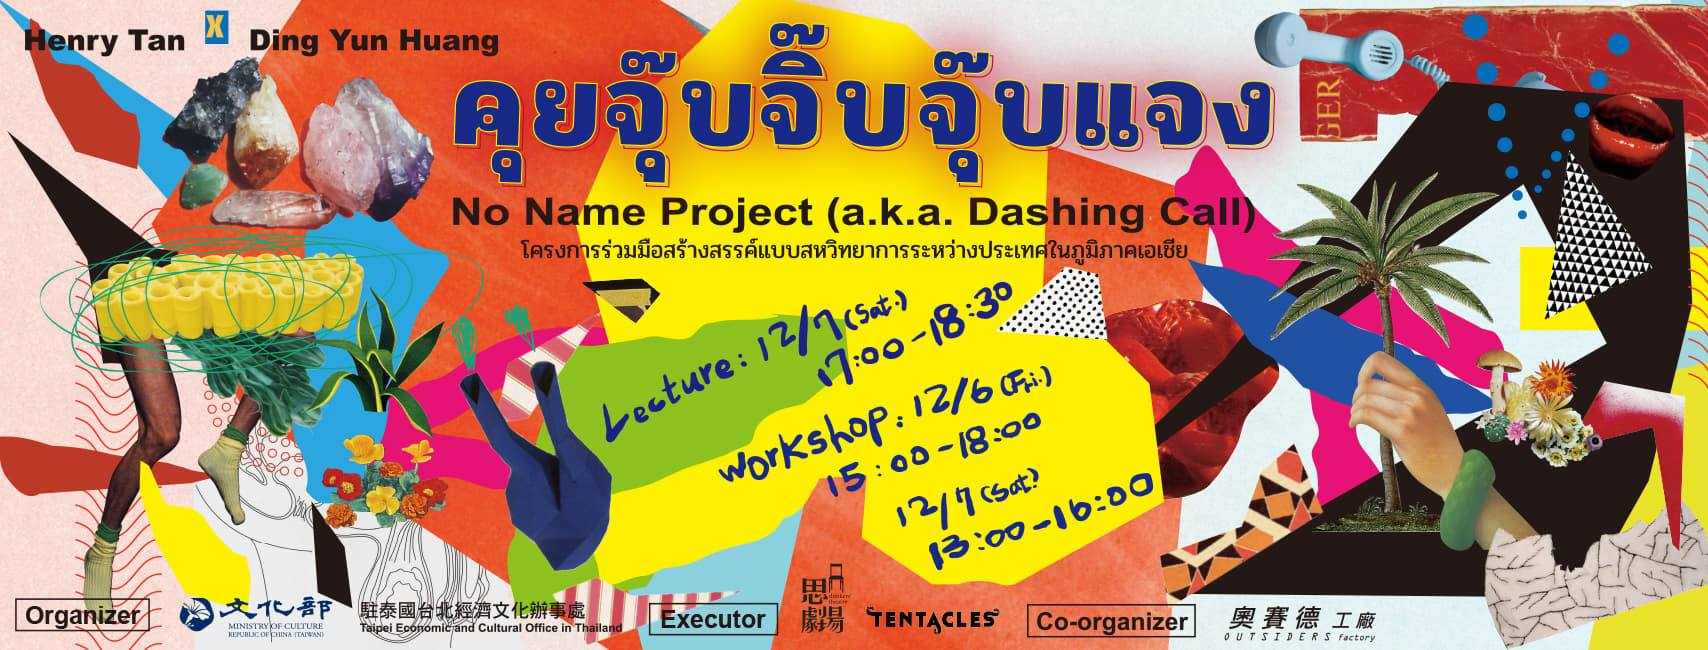 Taiwanese, Thai artists share cross-cultural collaboration practices